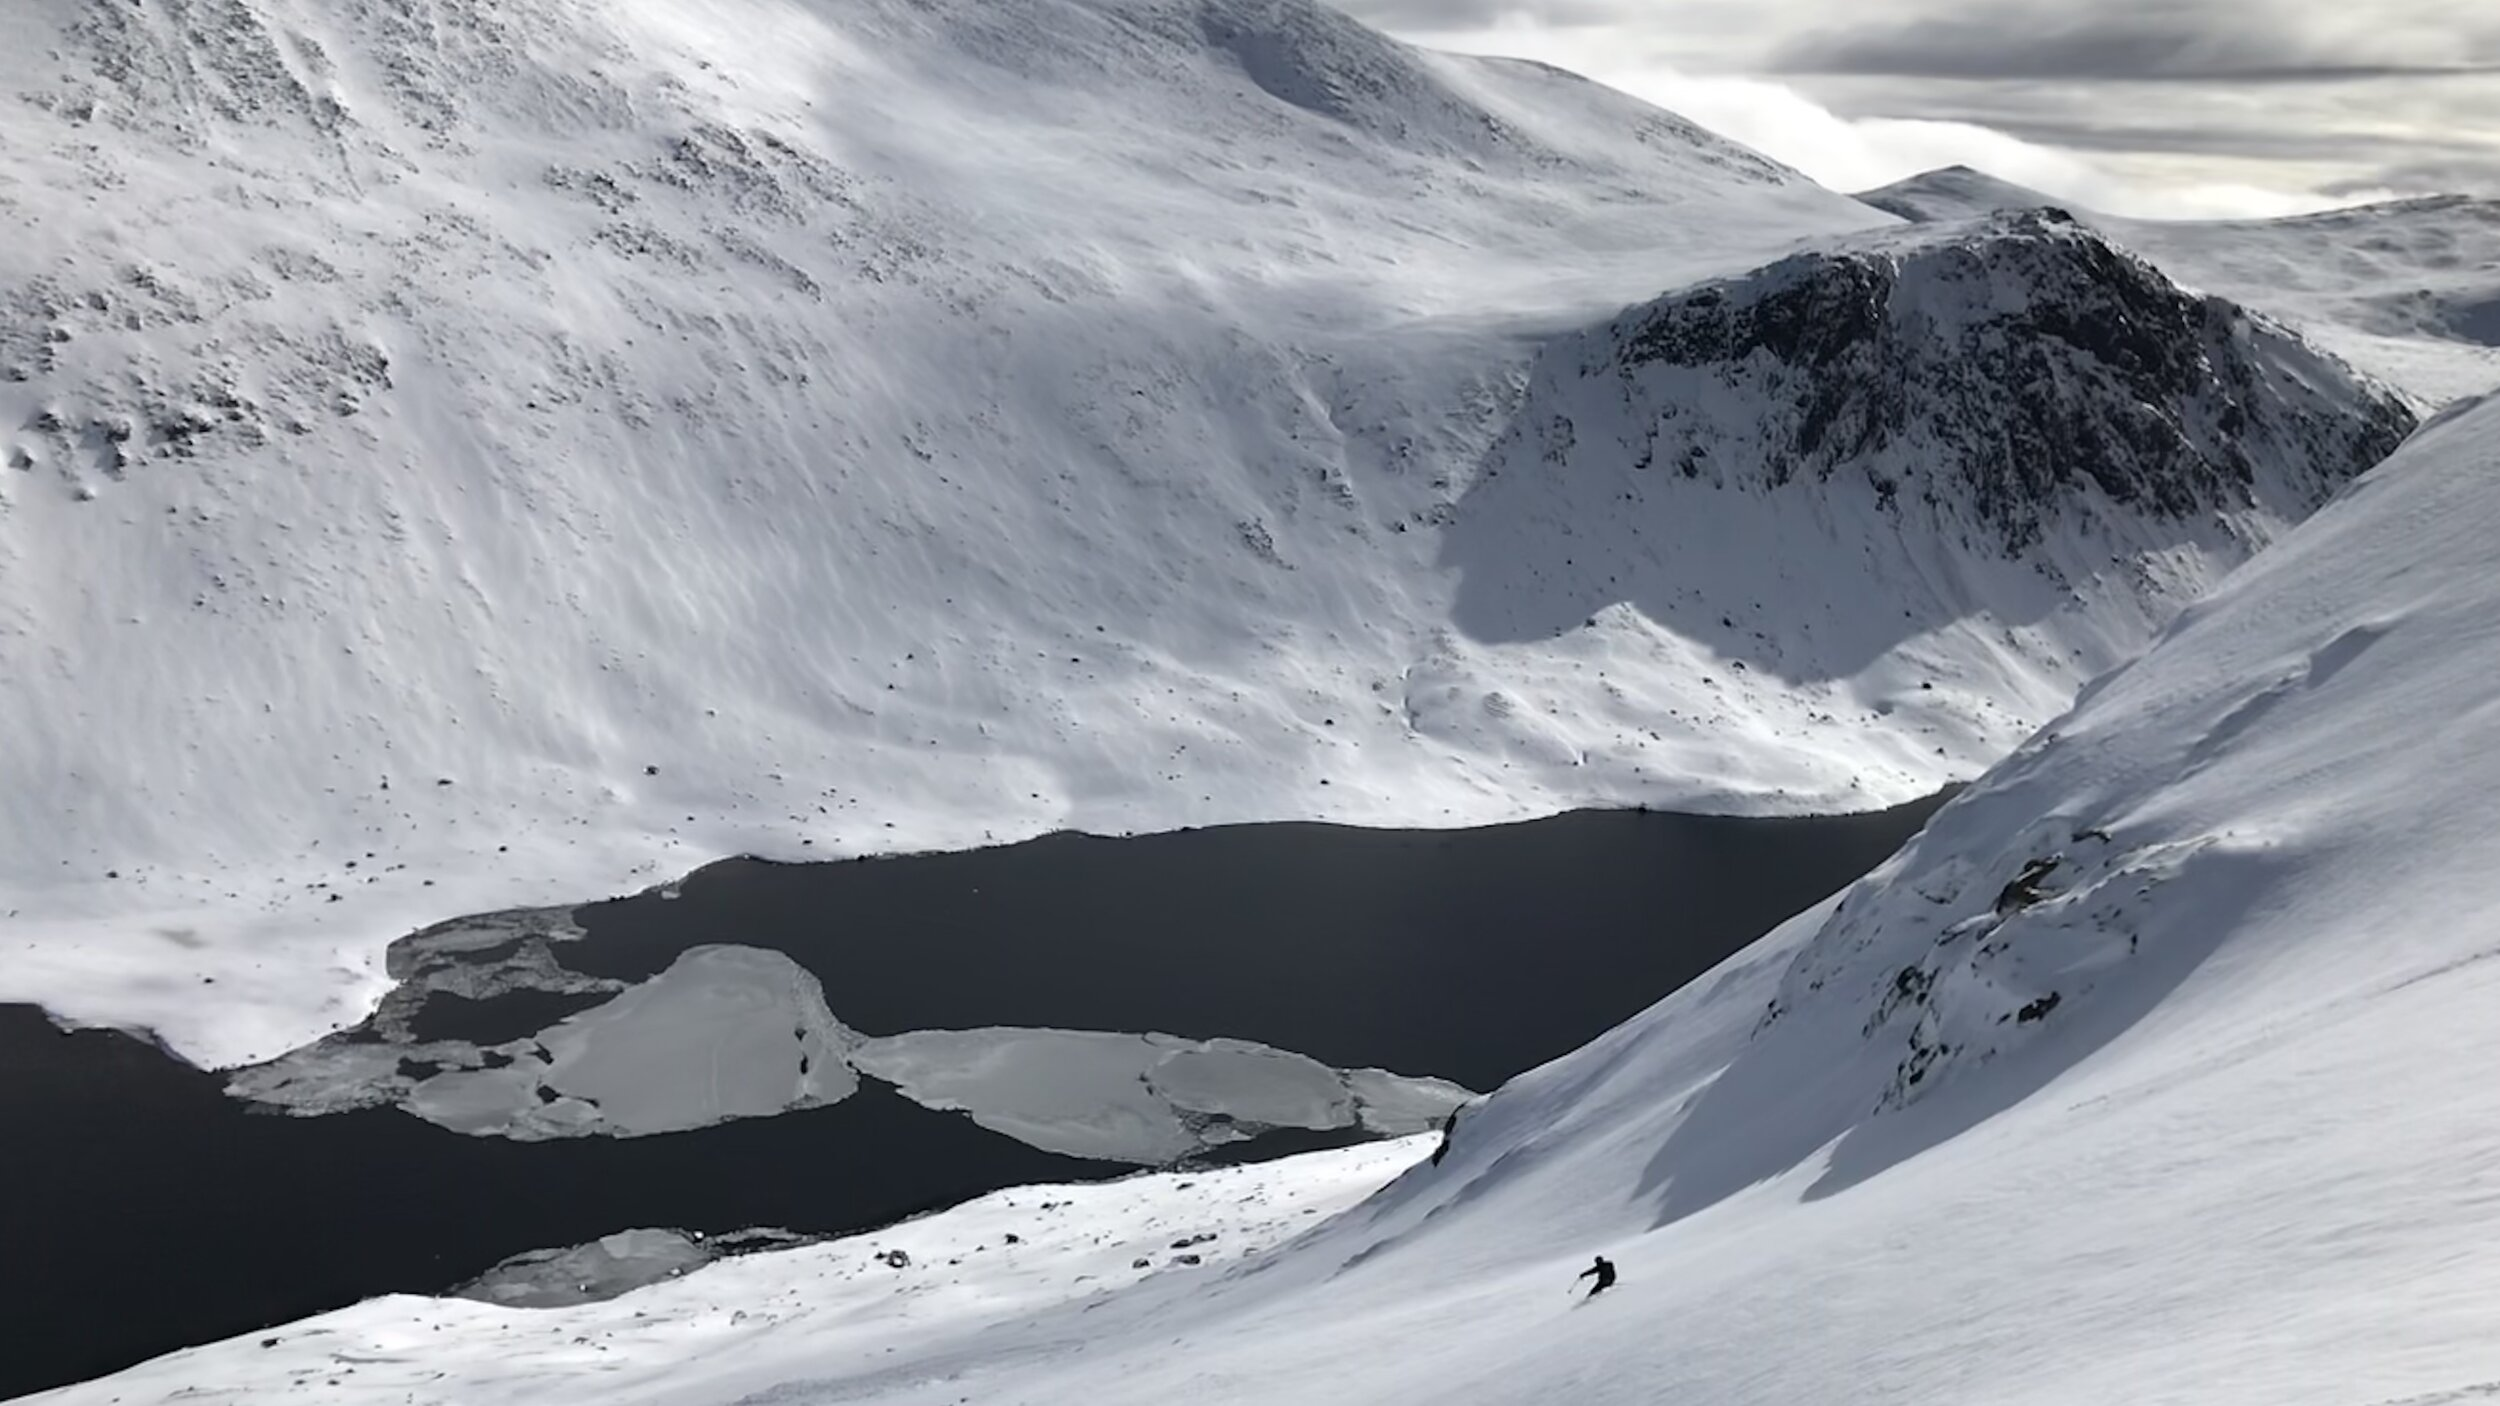 Ski Touring in the Cairngorms - Skier David Anderson Spring 2019